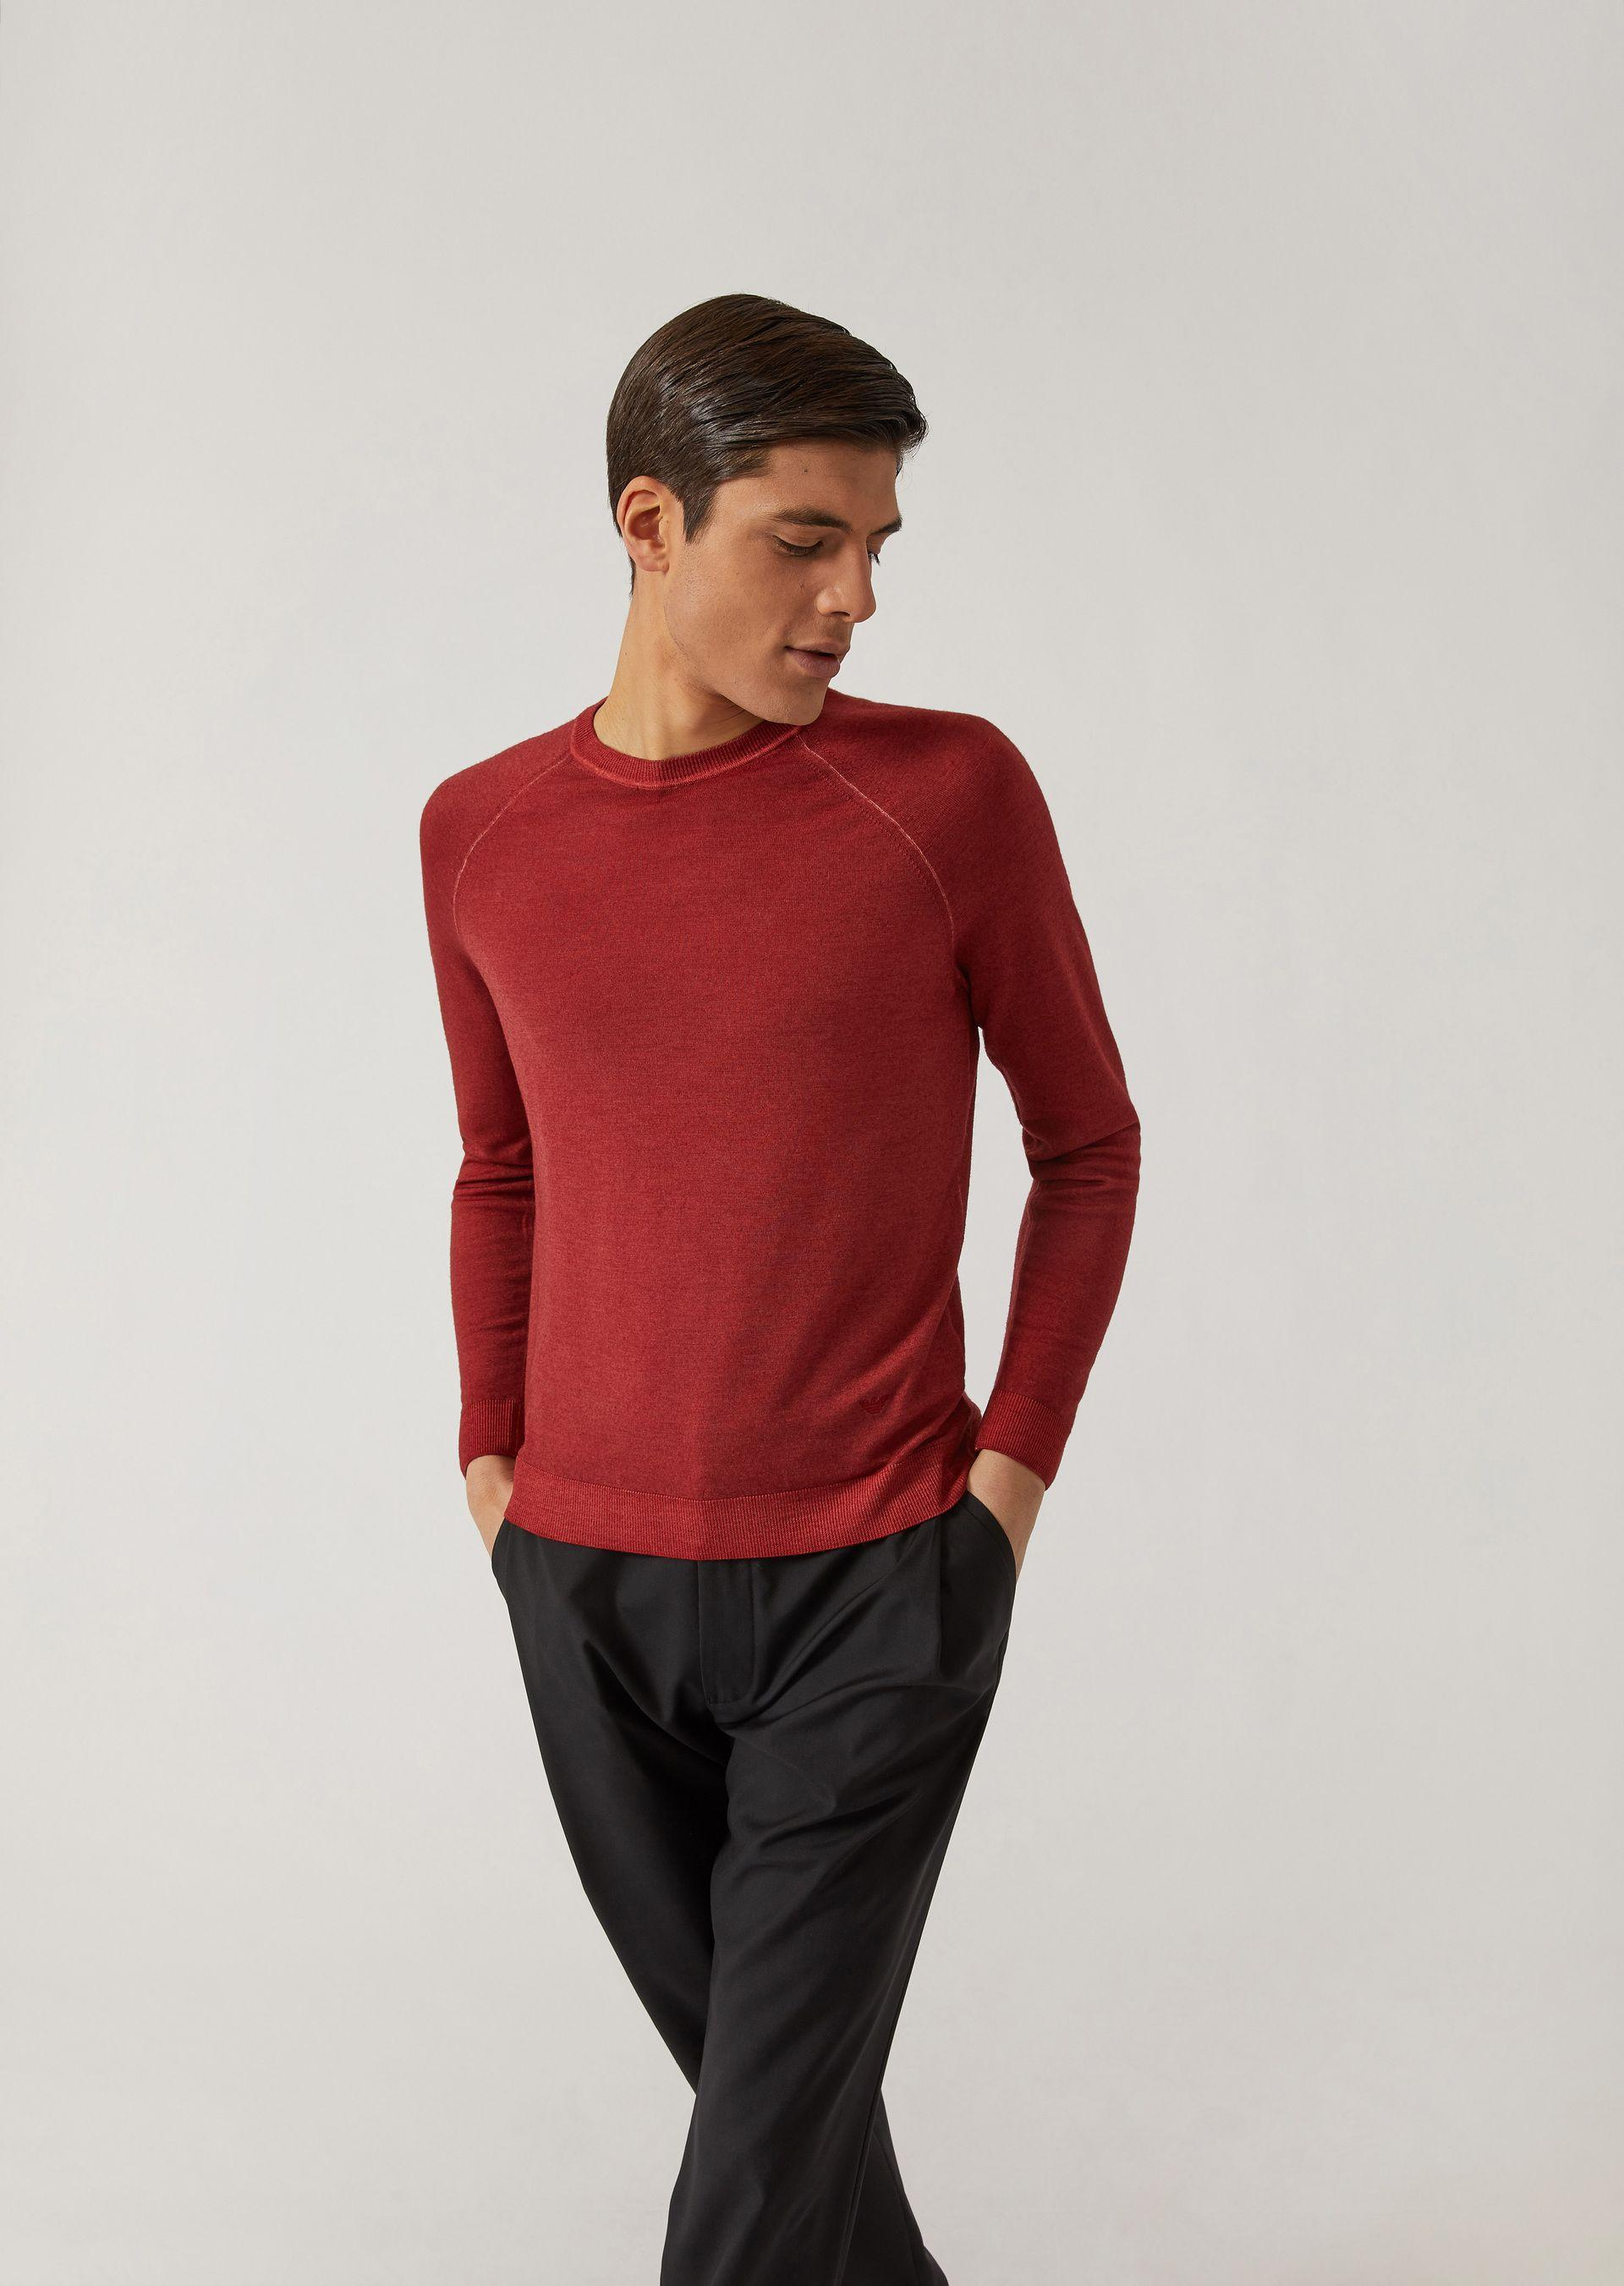 Emporio Armani Knitted Tops - Item 39850201 In Bordeaux ; Beige ; Cadet Blue